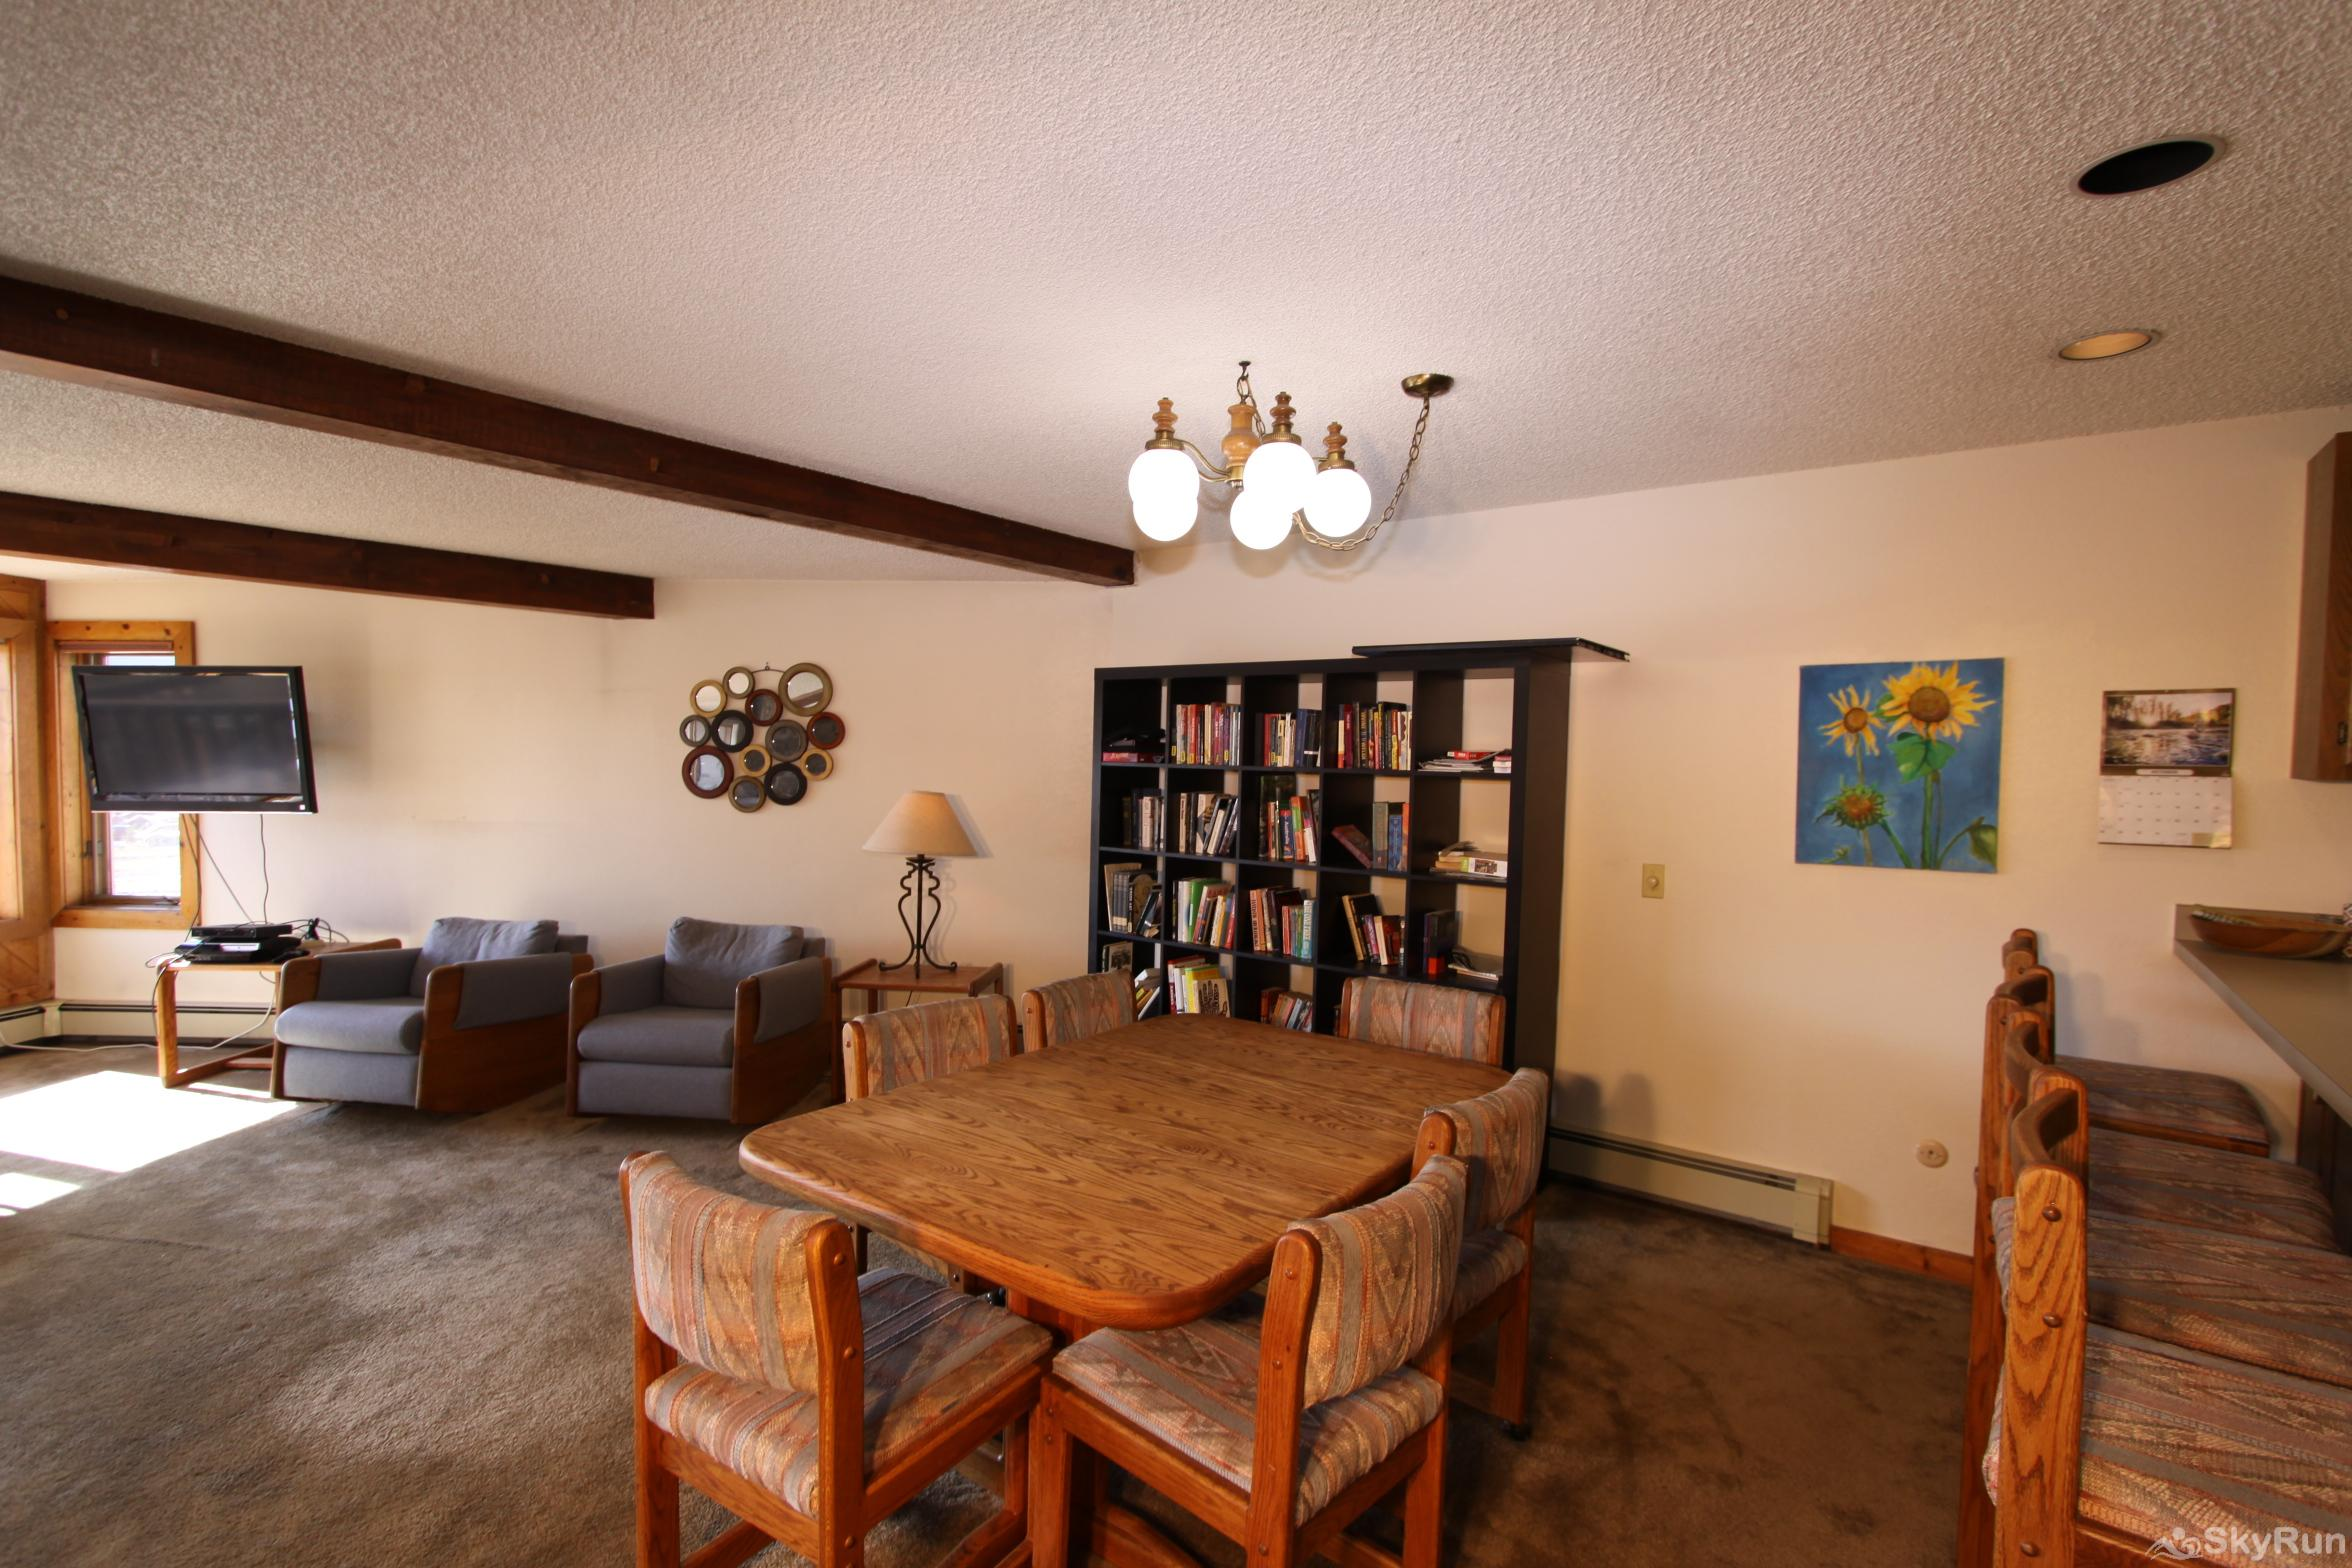 113A WPTC - Cranmer Rd Dining Area